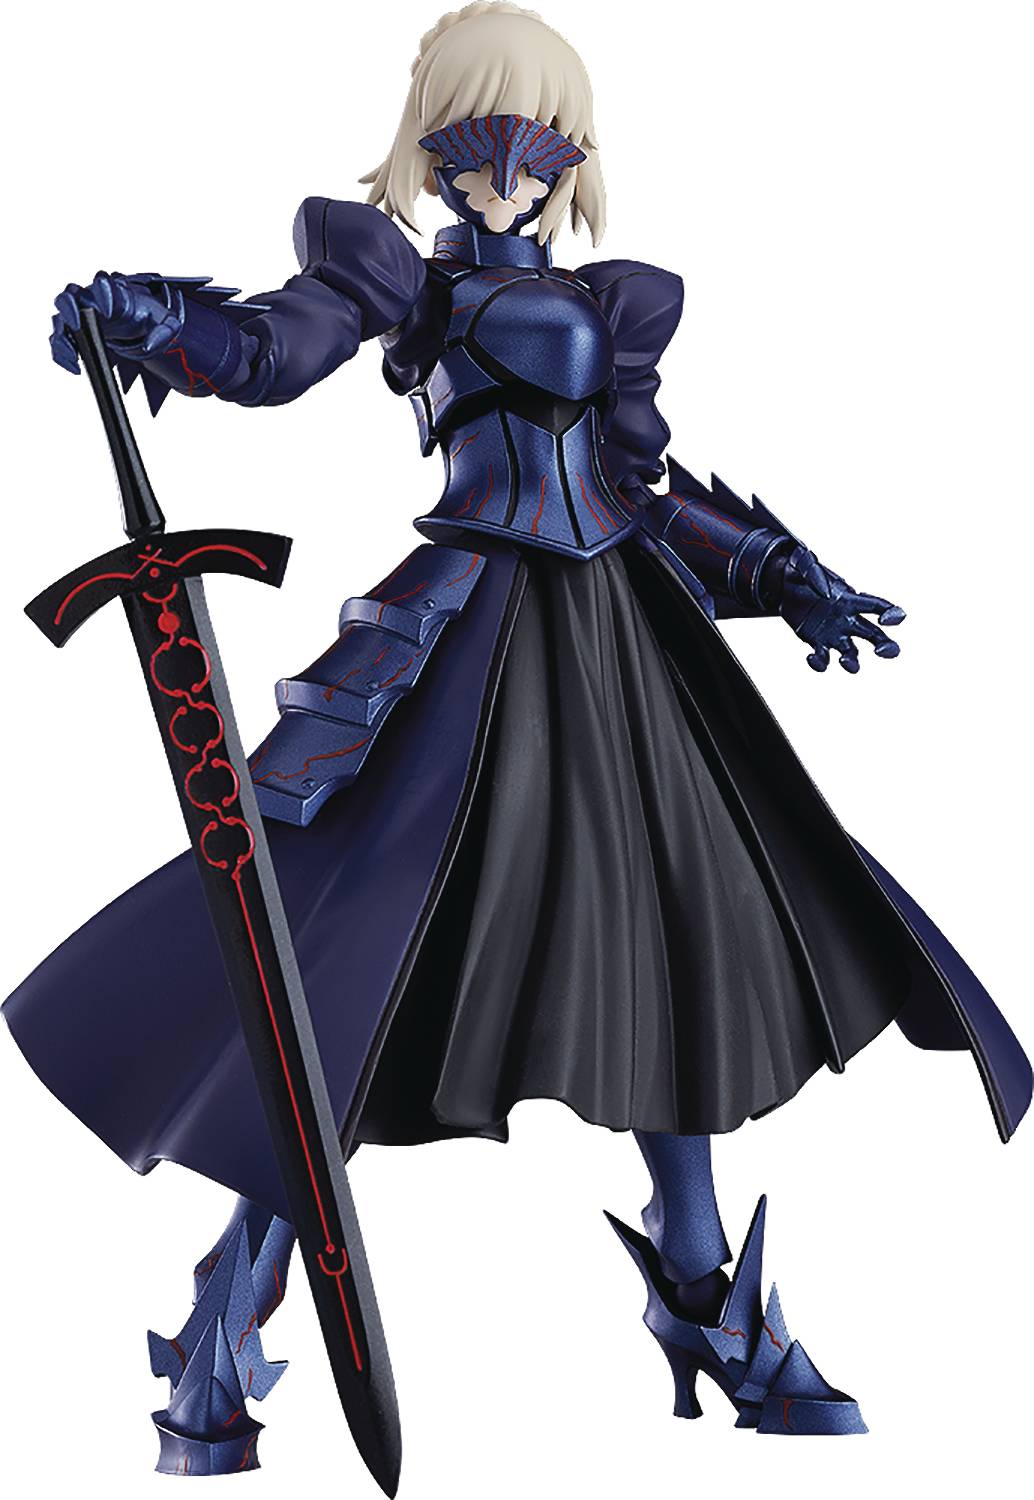 FATE STAY NIGHT HEAVENS FEEL SABER ALTER 2.0 FIGMA AF